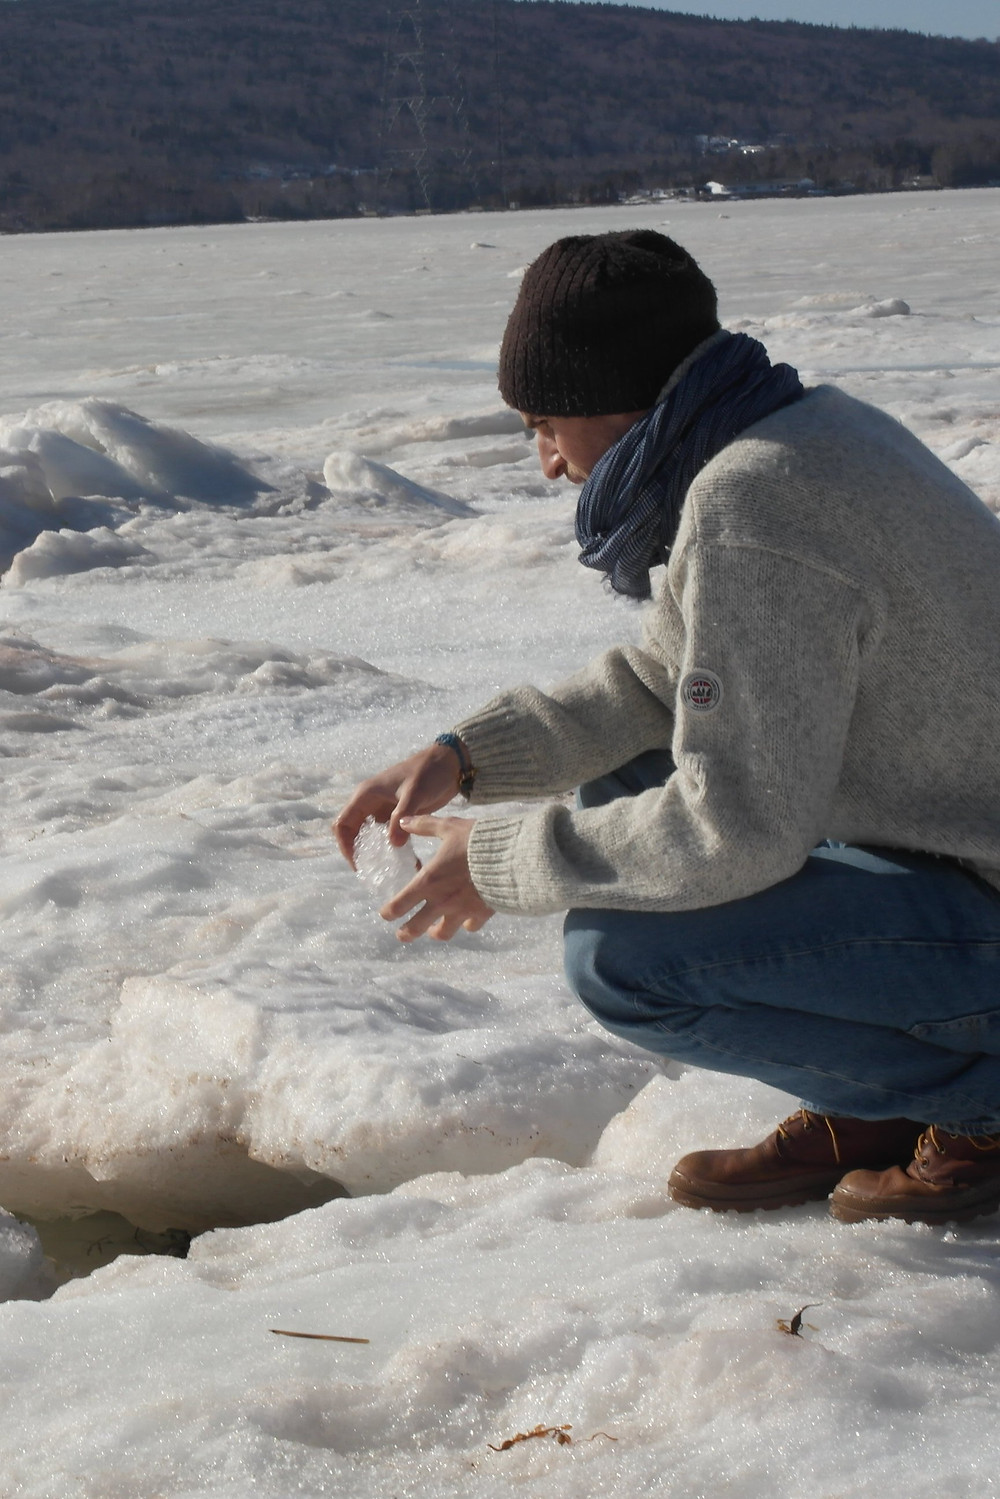 A person kneeling on ice holding a piece of ice in their hands